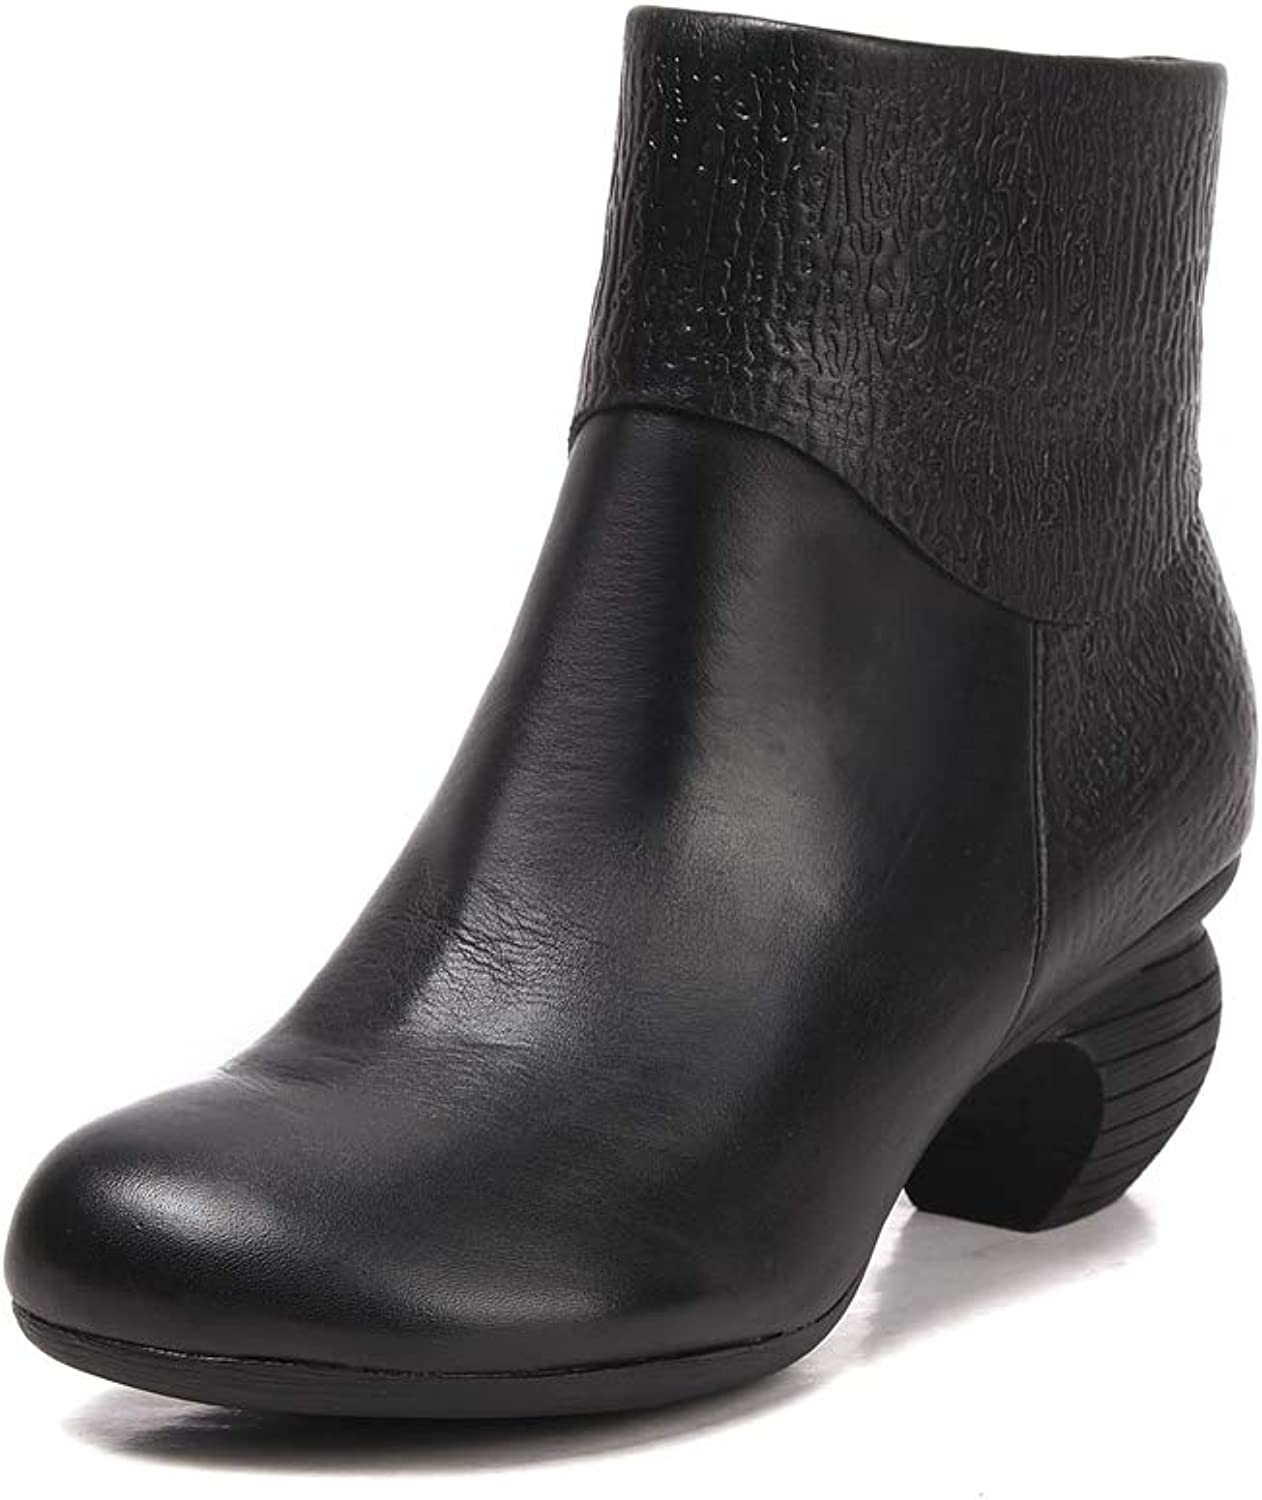 Women's Winter Leather Martin Boots, Plush mid-Tube Warm Non-Slip Women's Boots, Cotton Boots.